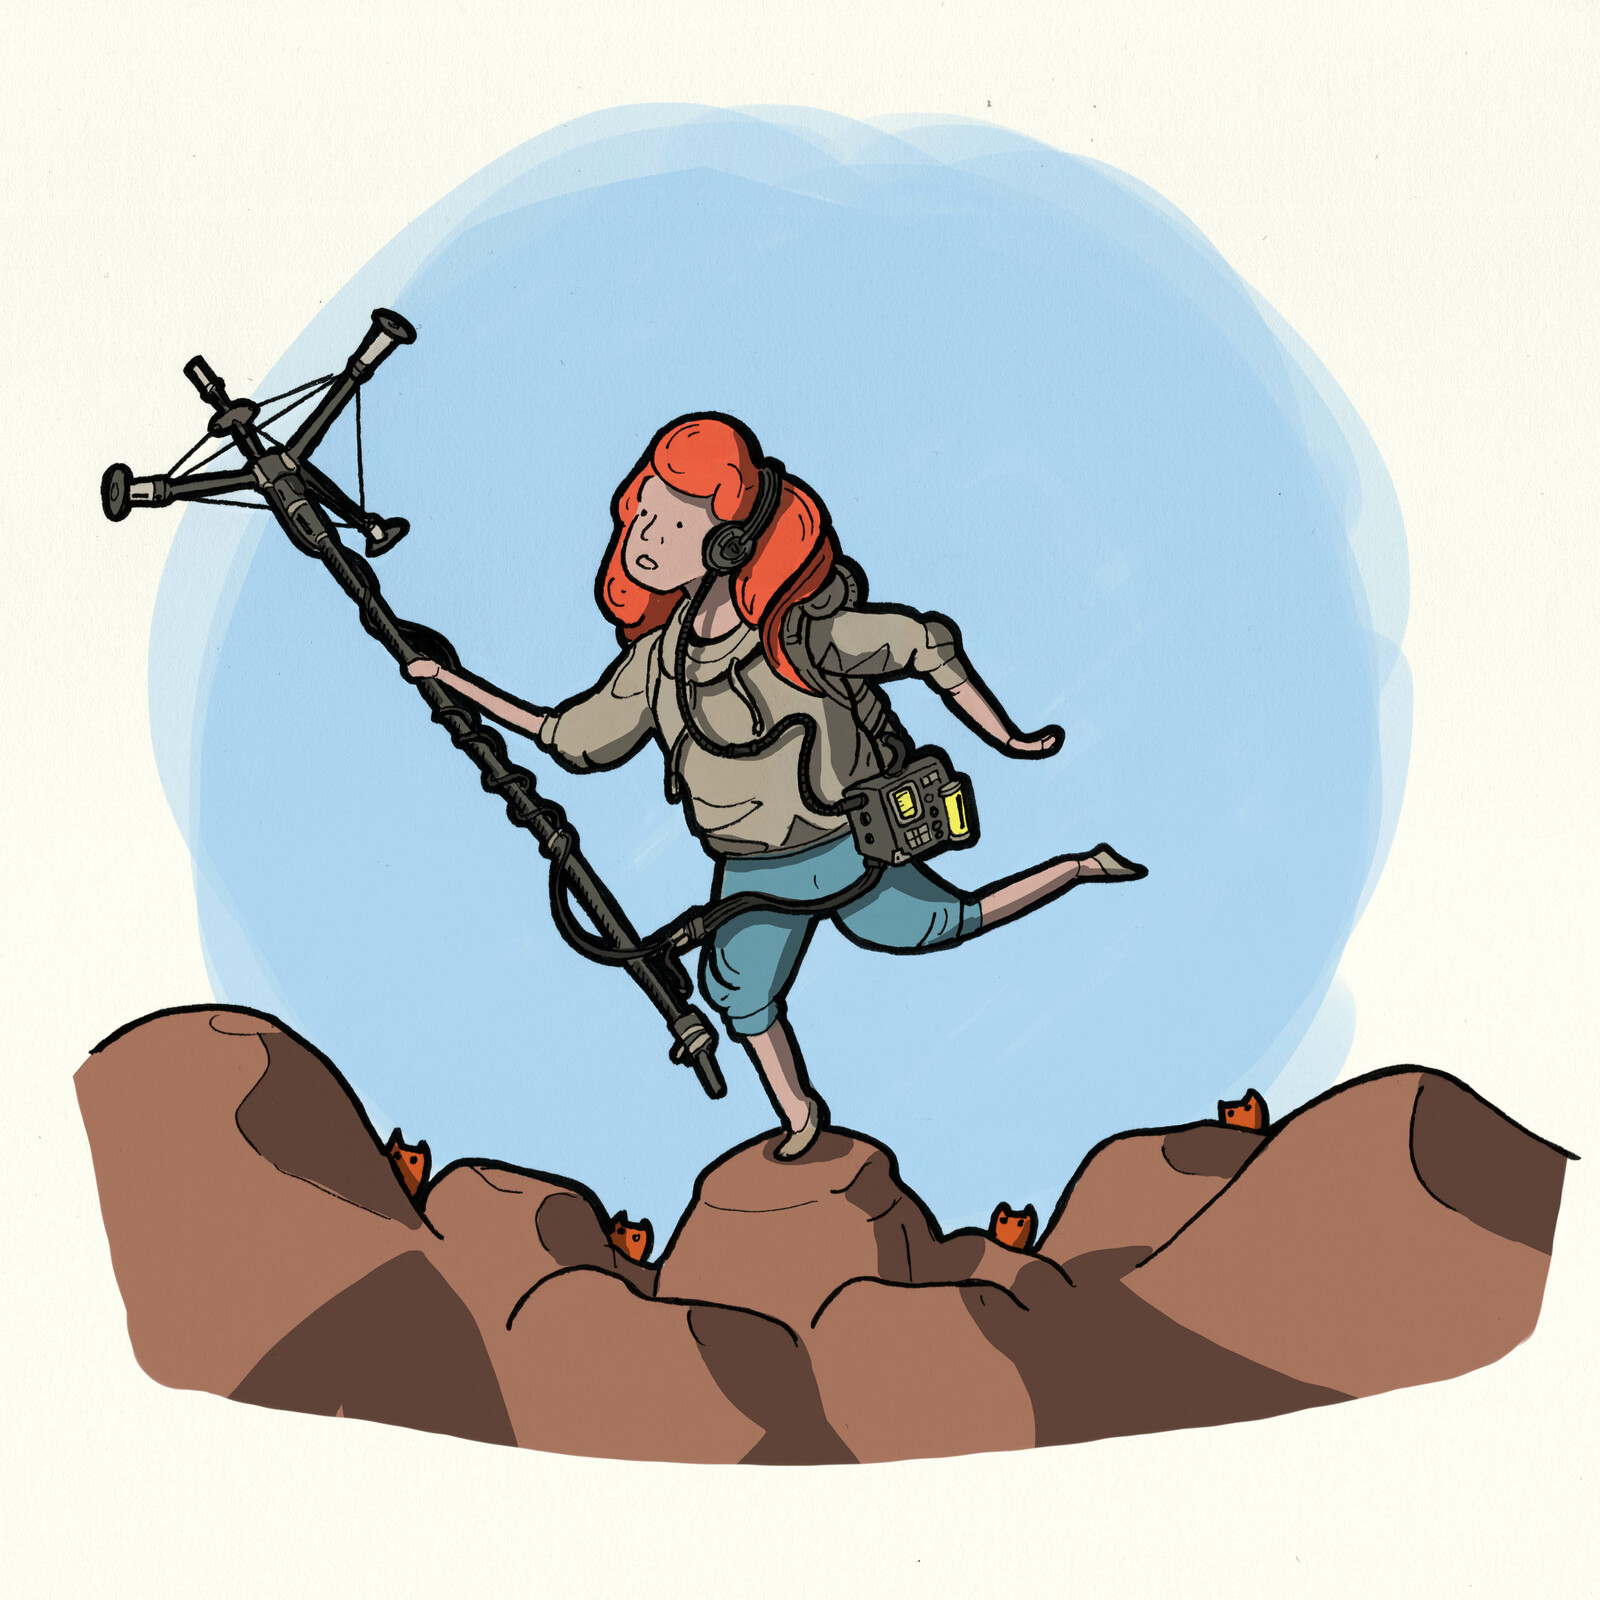 1-The adventurer Among the rocks of the great red rocky desert EK was looking for wavy space stuff with her antenna.